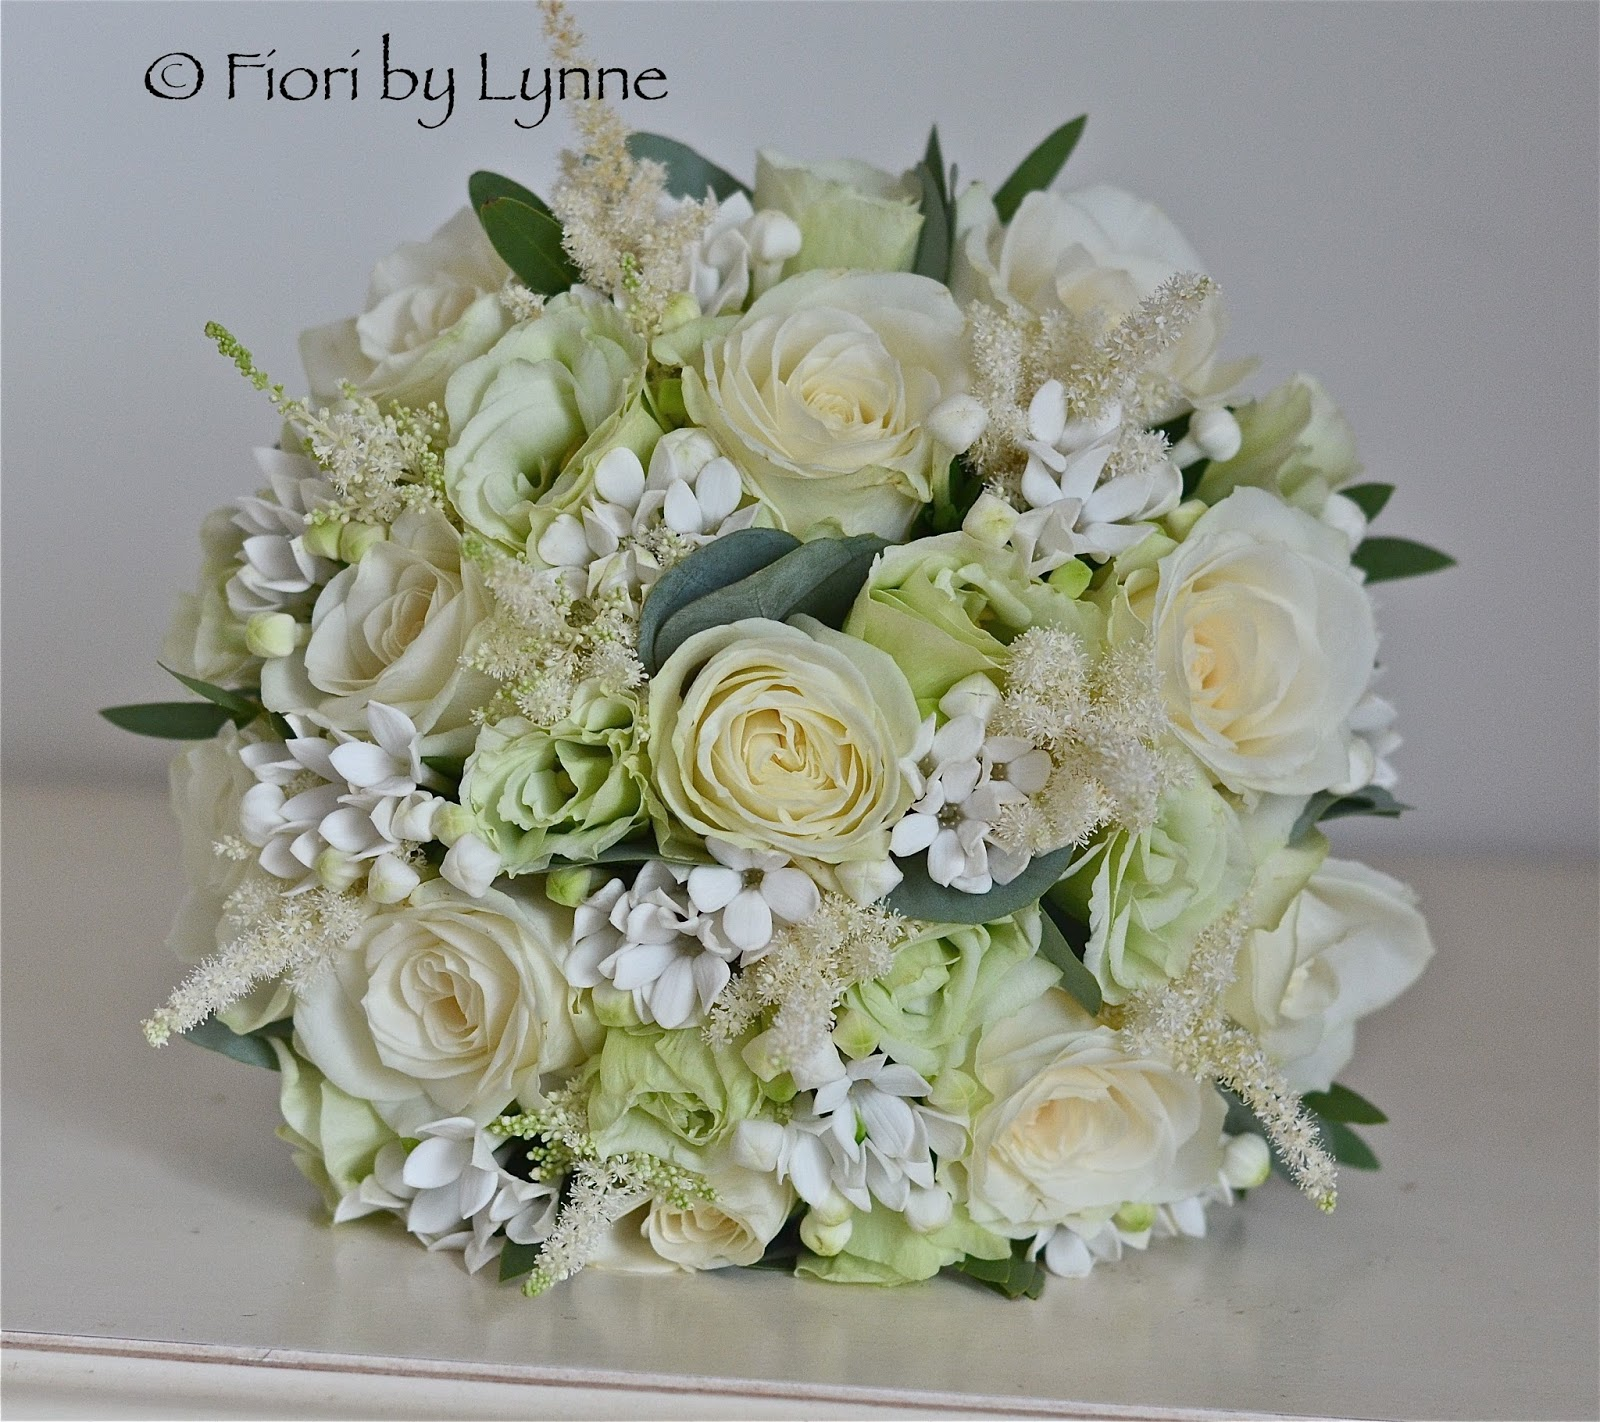 Wedding flowers blog rosies vintage wedding weddings old thorns bouquet in pale green silver and ivory for rosie using roses bouvardia apple lisianthus and white astilbe with a little touch of eucalyptus izmirmasajfo